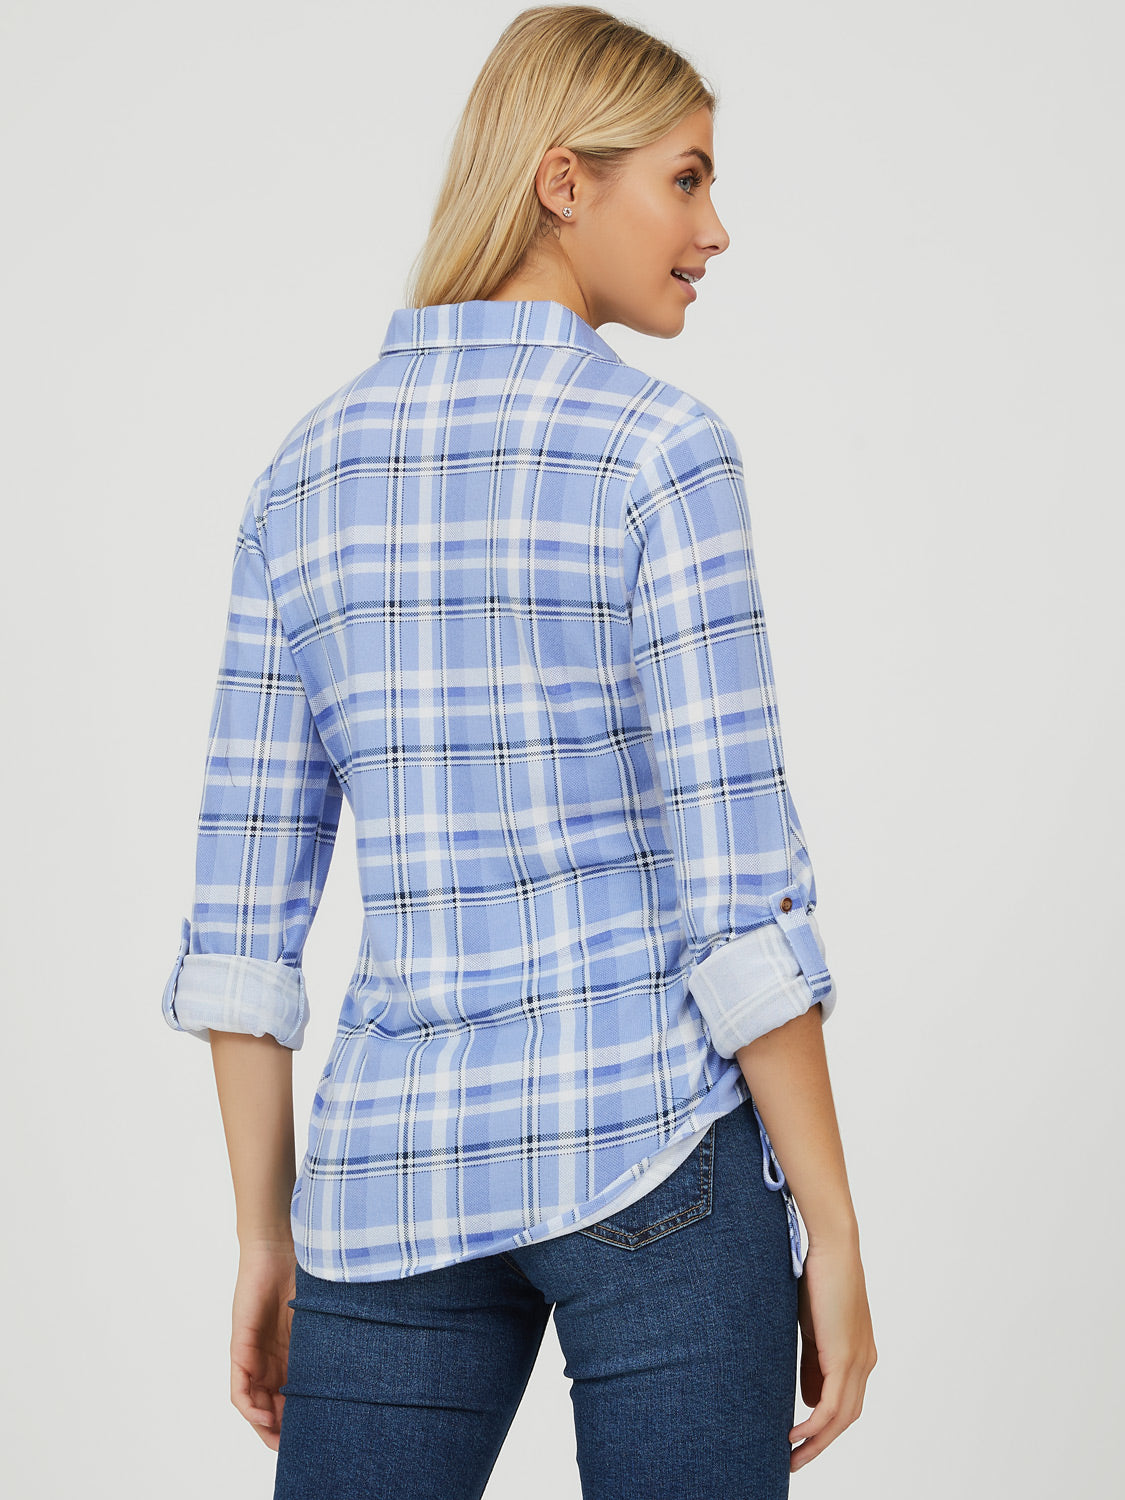 Rolled-Up Sleeve Button-Down Blouse